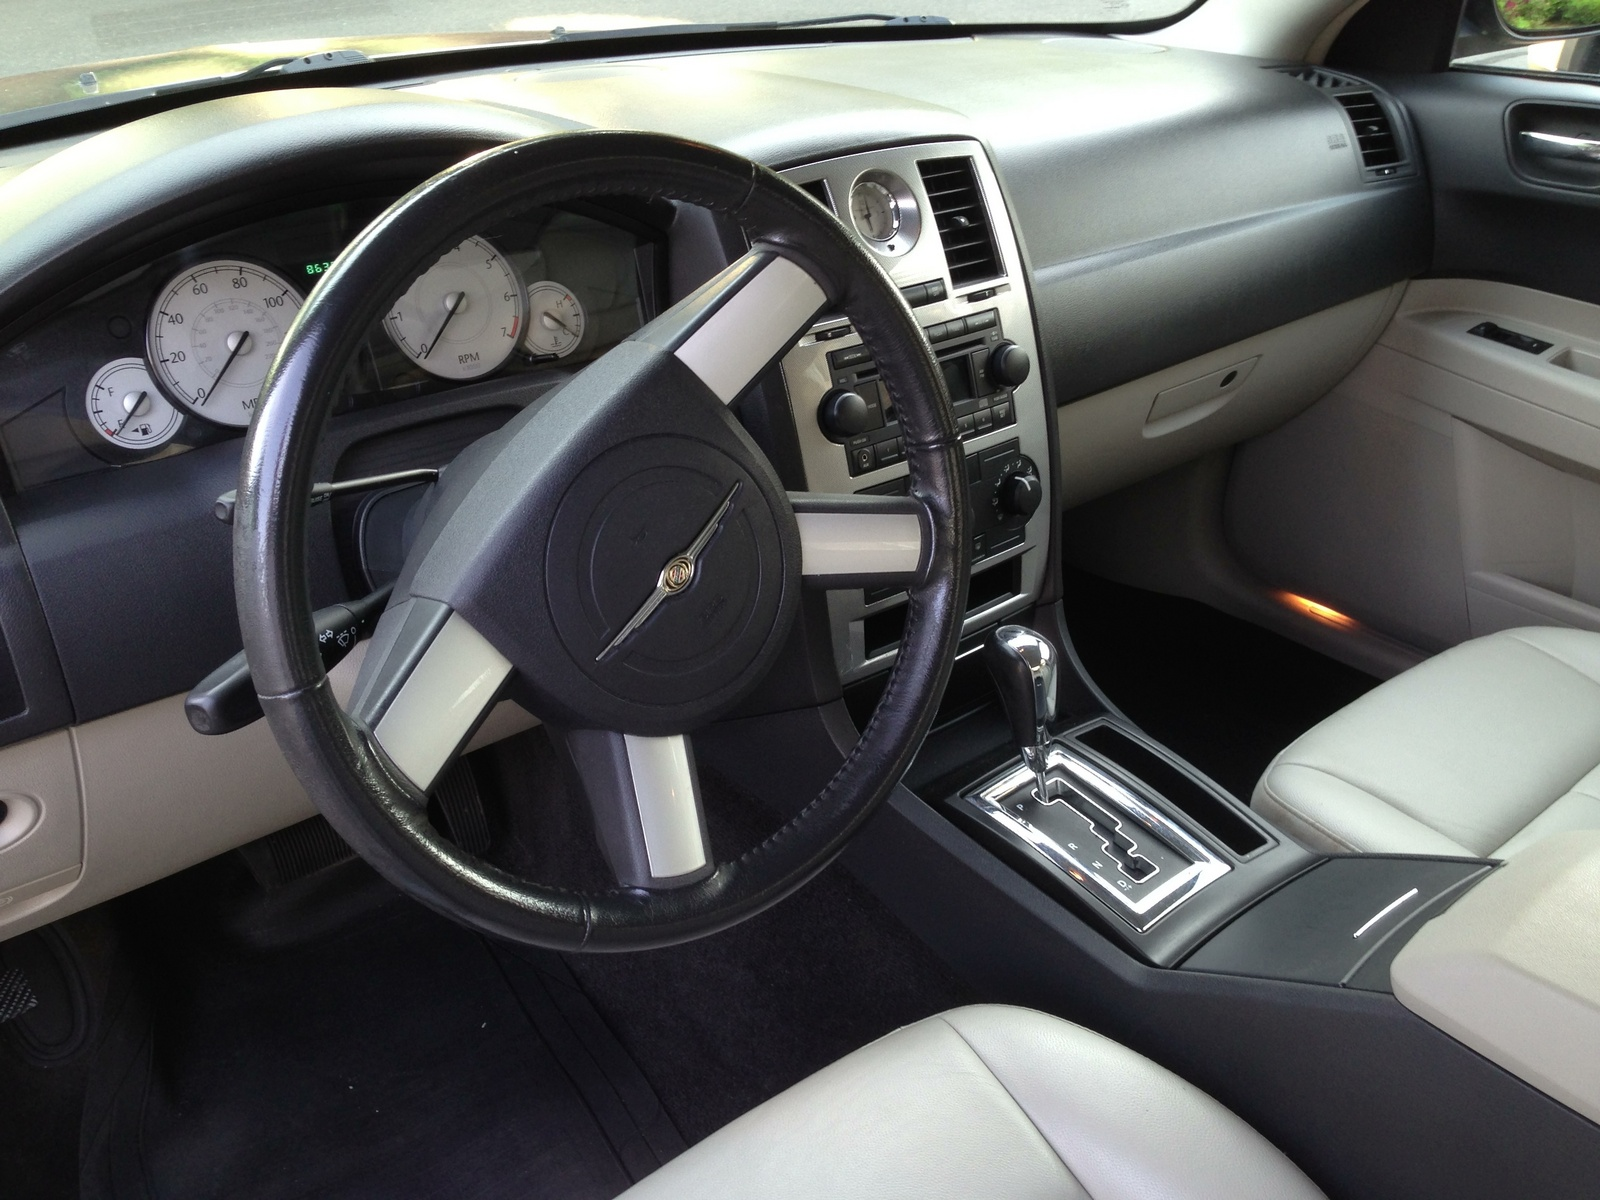 2006 chrysler 300 pictures cargurus - 2007 chrysler 300 custom interior ...